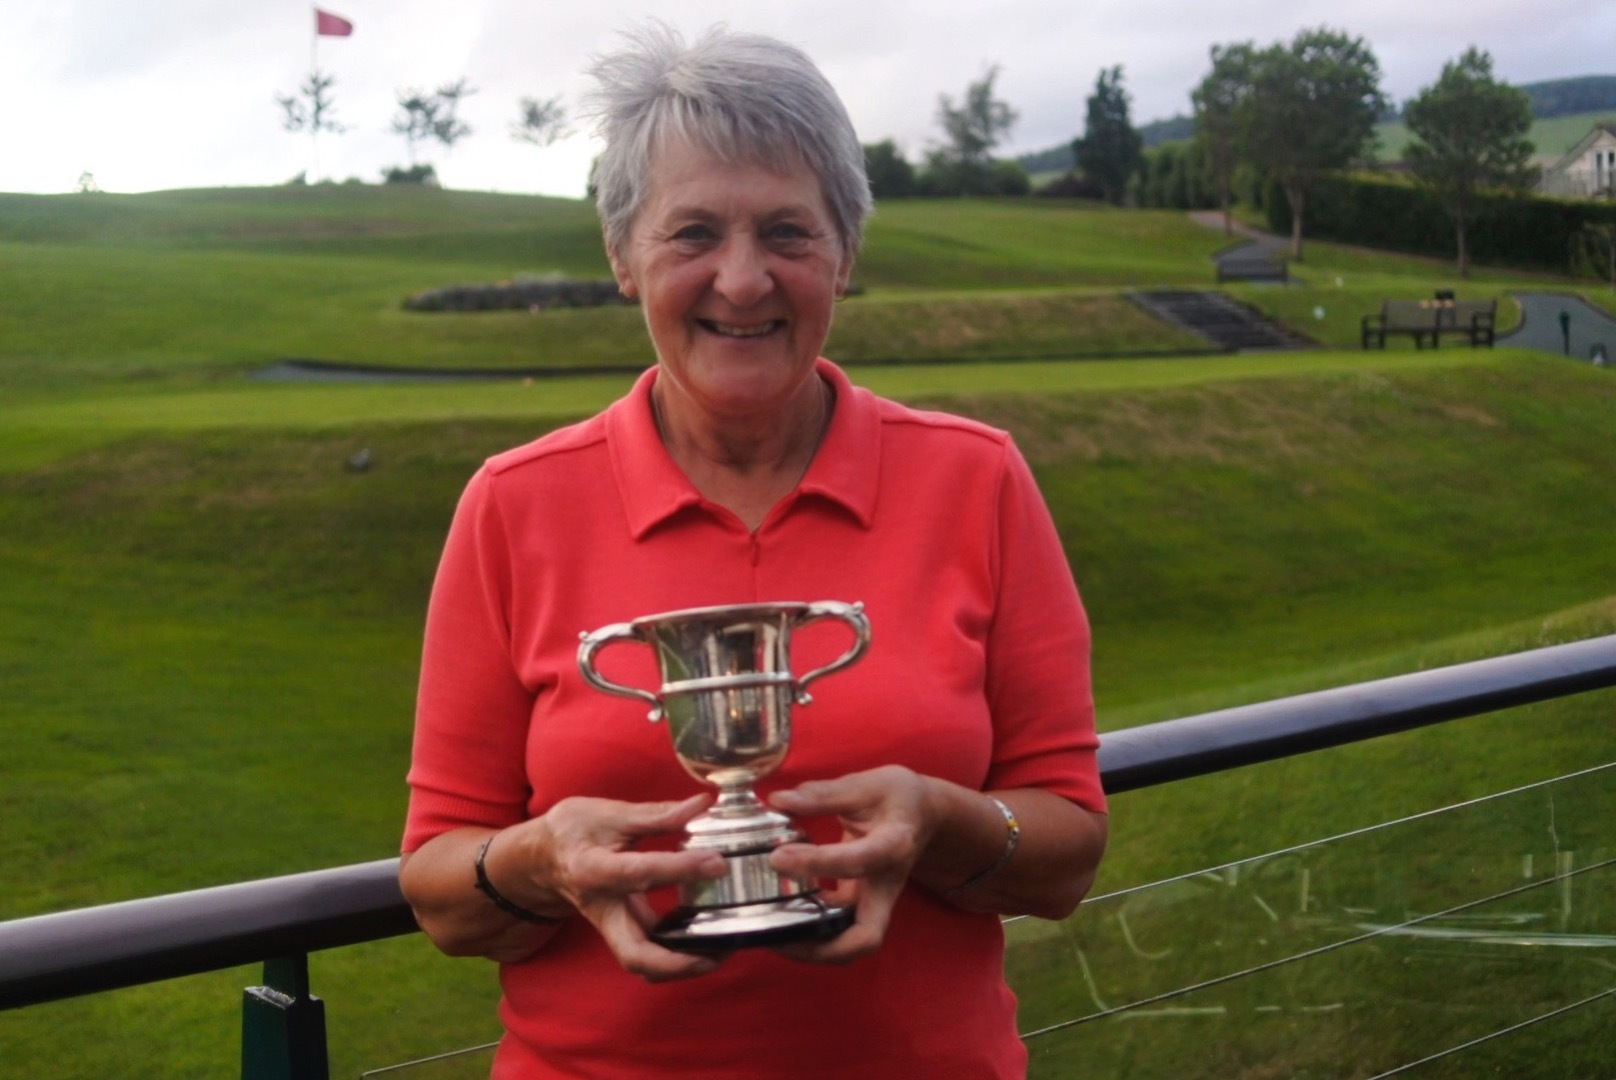 Sheila Cuthbertson was honoured by Peebles Golf Club